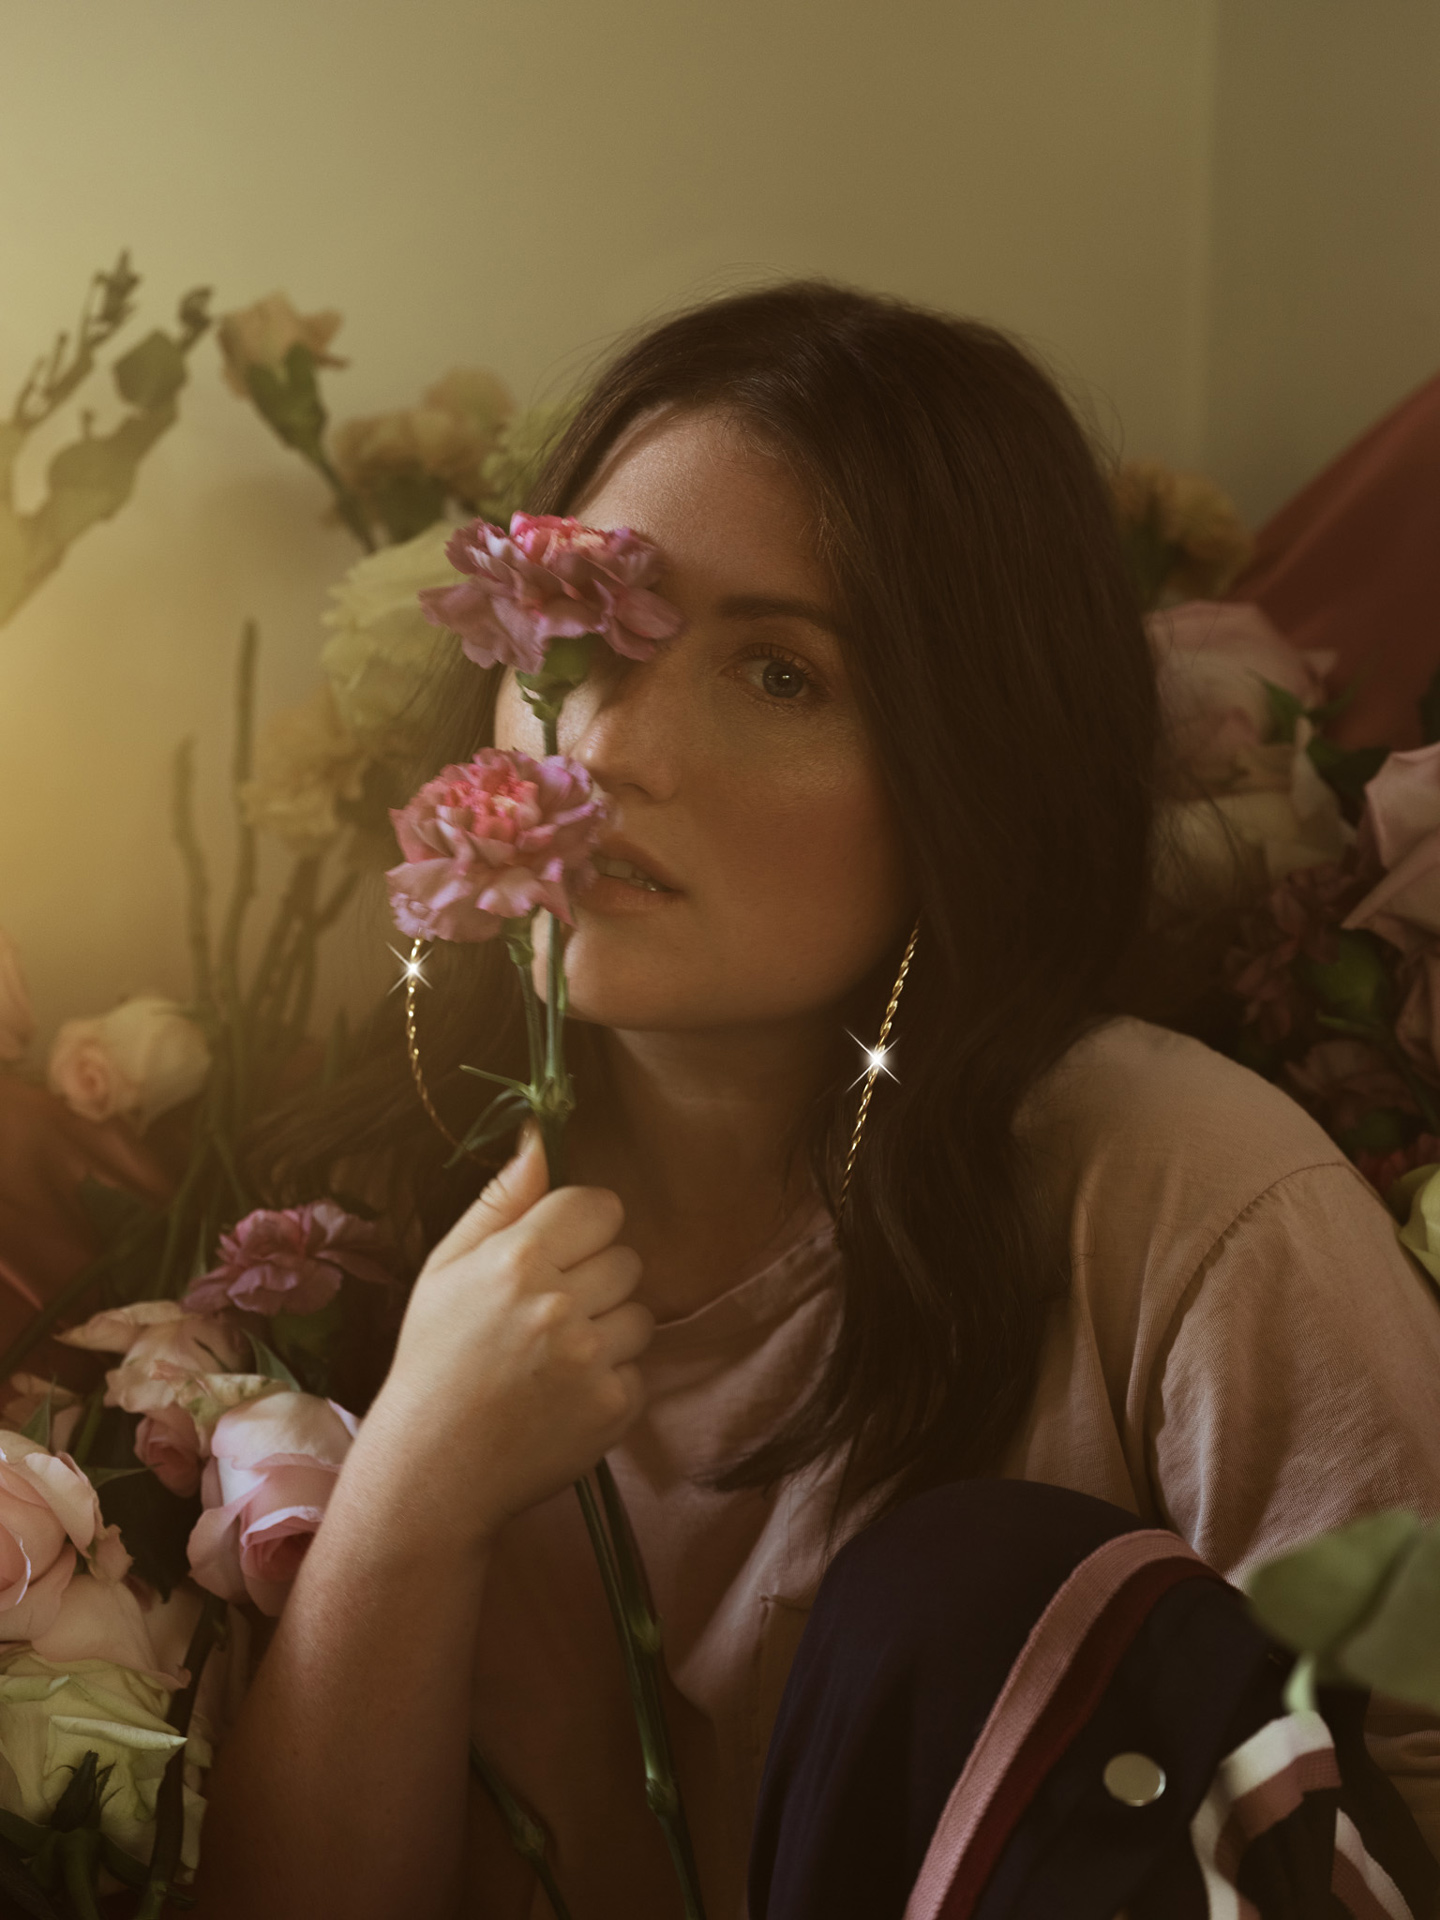 portrait of singer Fanny Bloom half-hidden behind a bouquet of roses for her album Liqueur by Maxyme G. Delisle